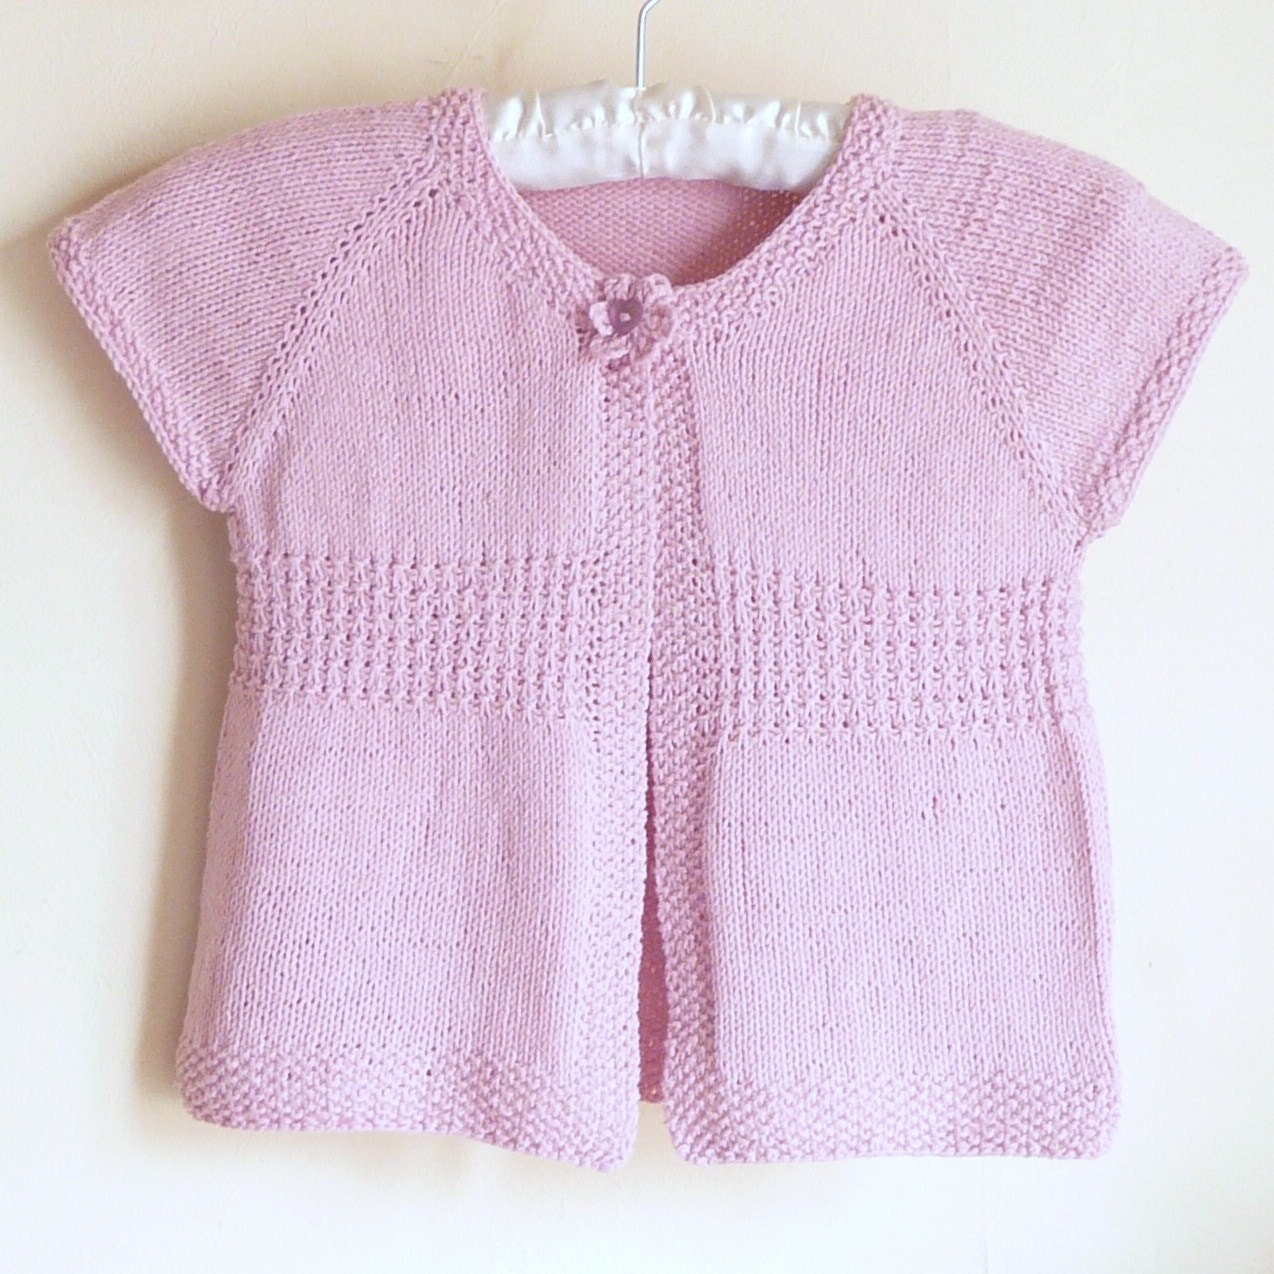 Baby Girl Sweater Patterns Knitting : Knitting PATTERN Seamless Top Down Baby Girl CARDIGAN by ceradka